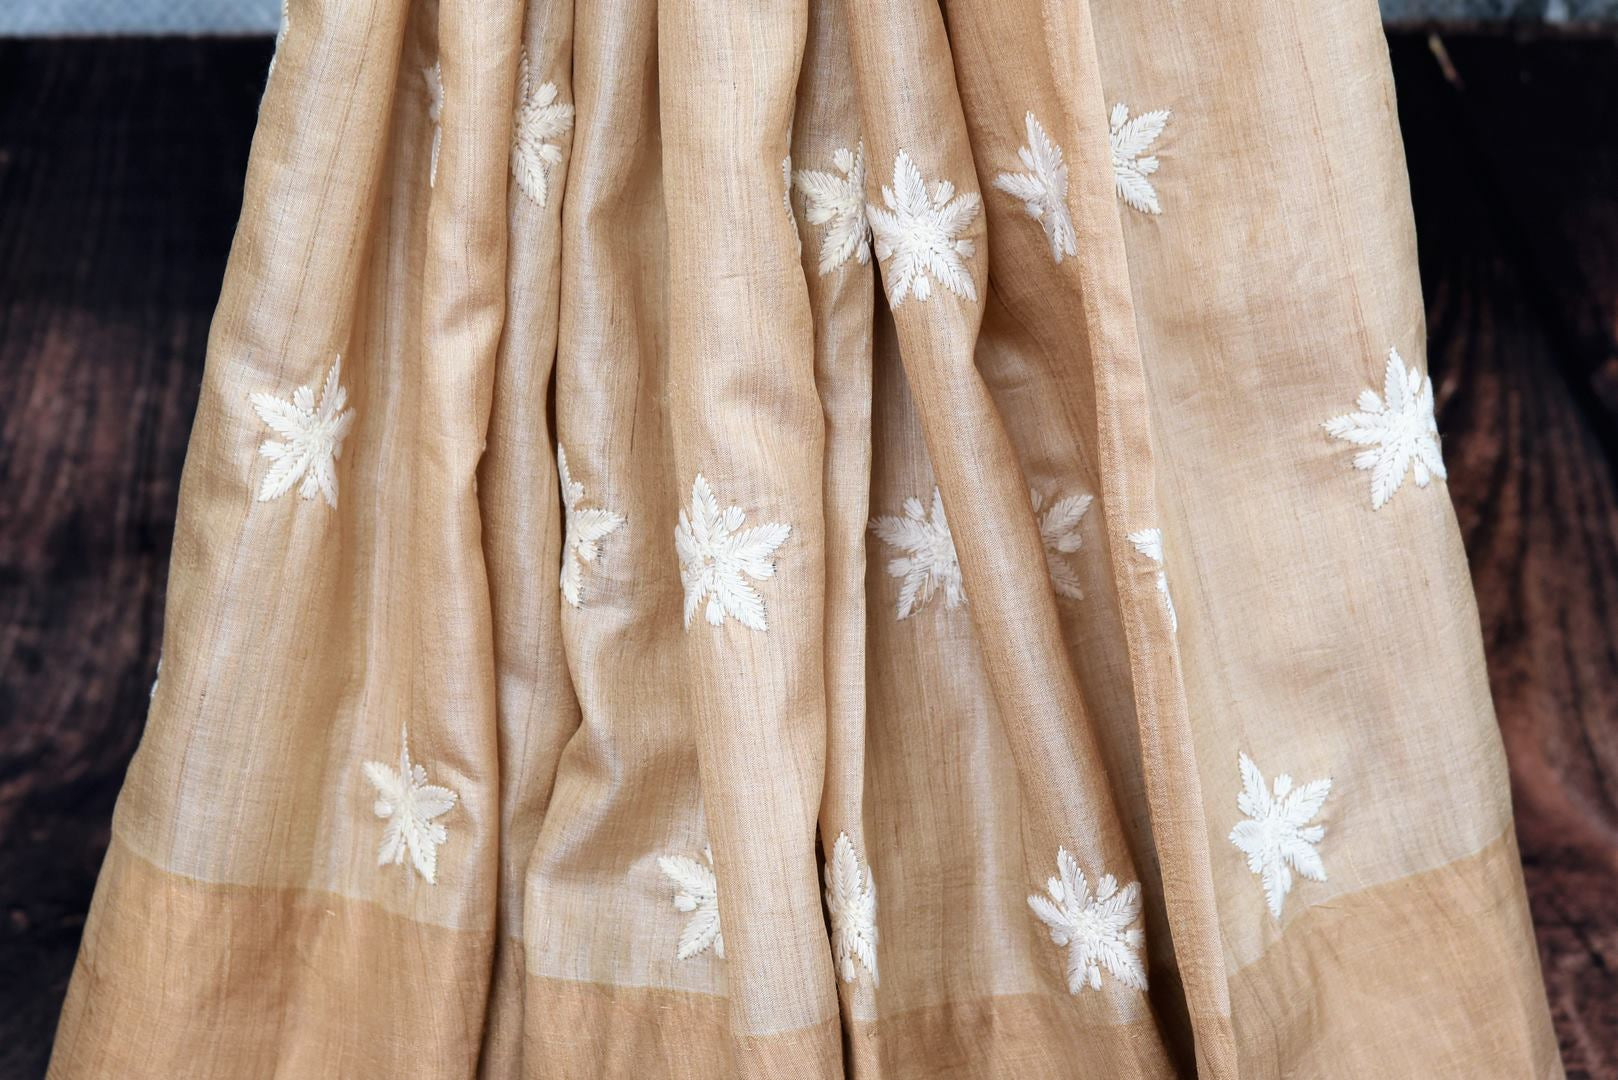 Buy elegant handwoven beige embroidered tussar silk saree online in USA. The sari comes with a matching embroidered blouse piece. Add more such beautiful Indian handloom sarees to your ethnic wardrobe from Pure Elegance exclusive Indian clothing store in USA or shop online.-pleats